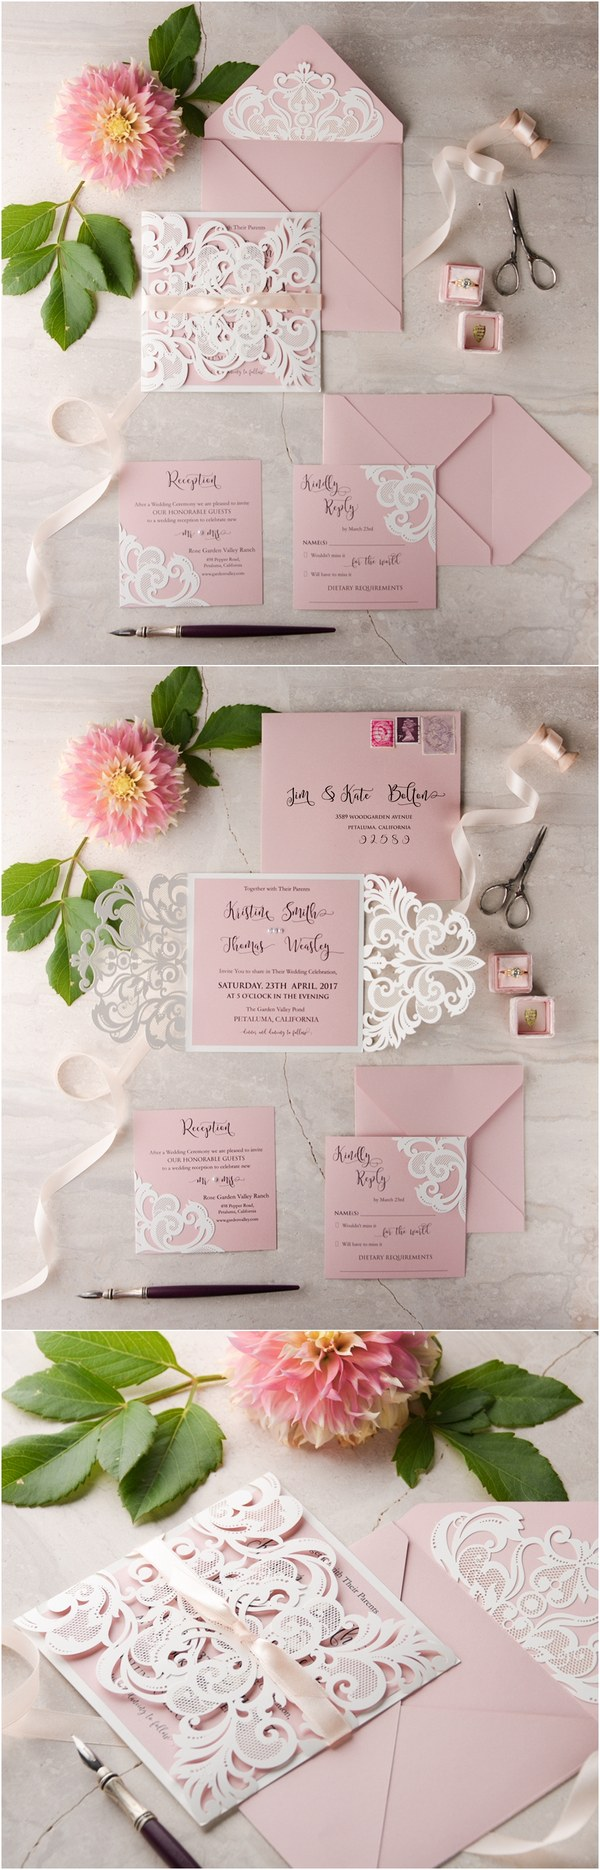 pink laser cut wedding invitations 08LuctGGz